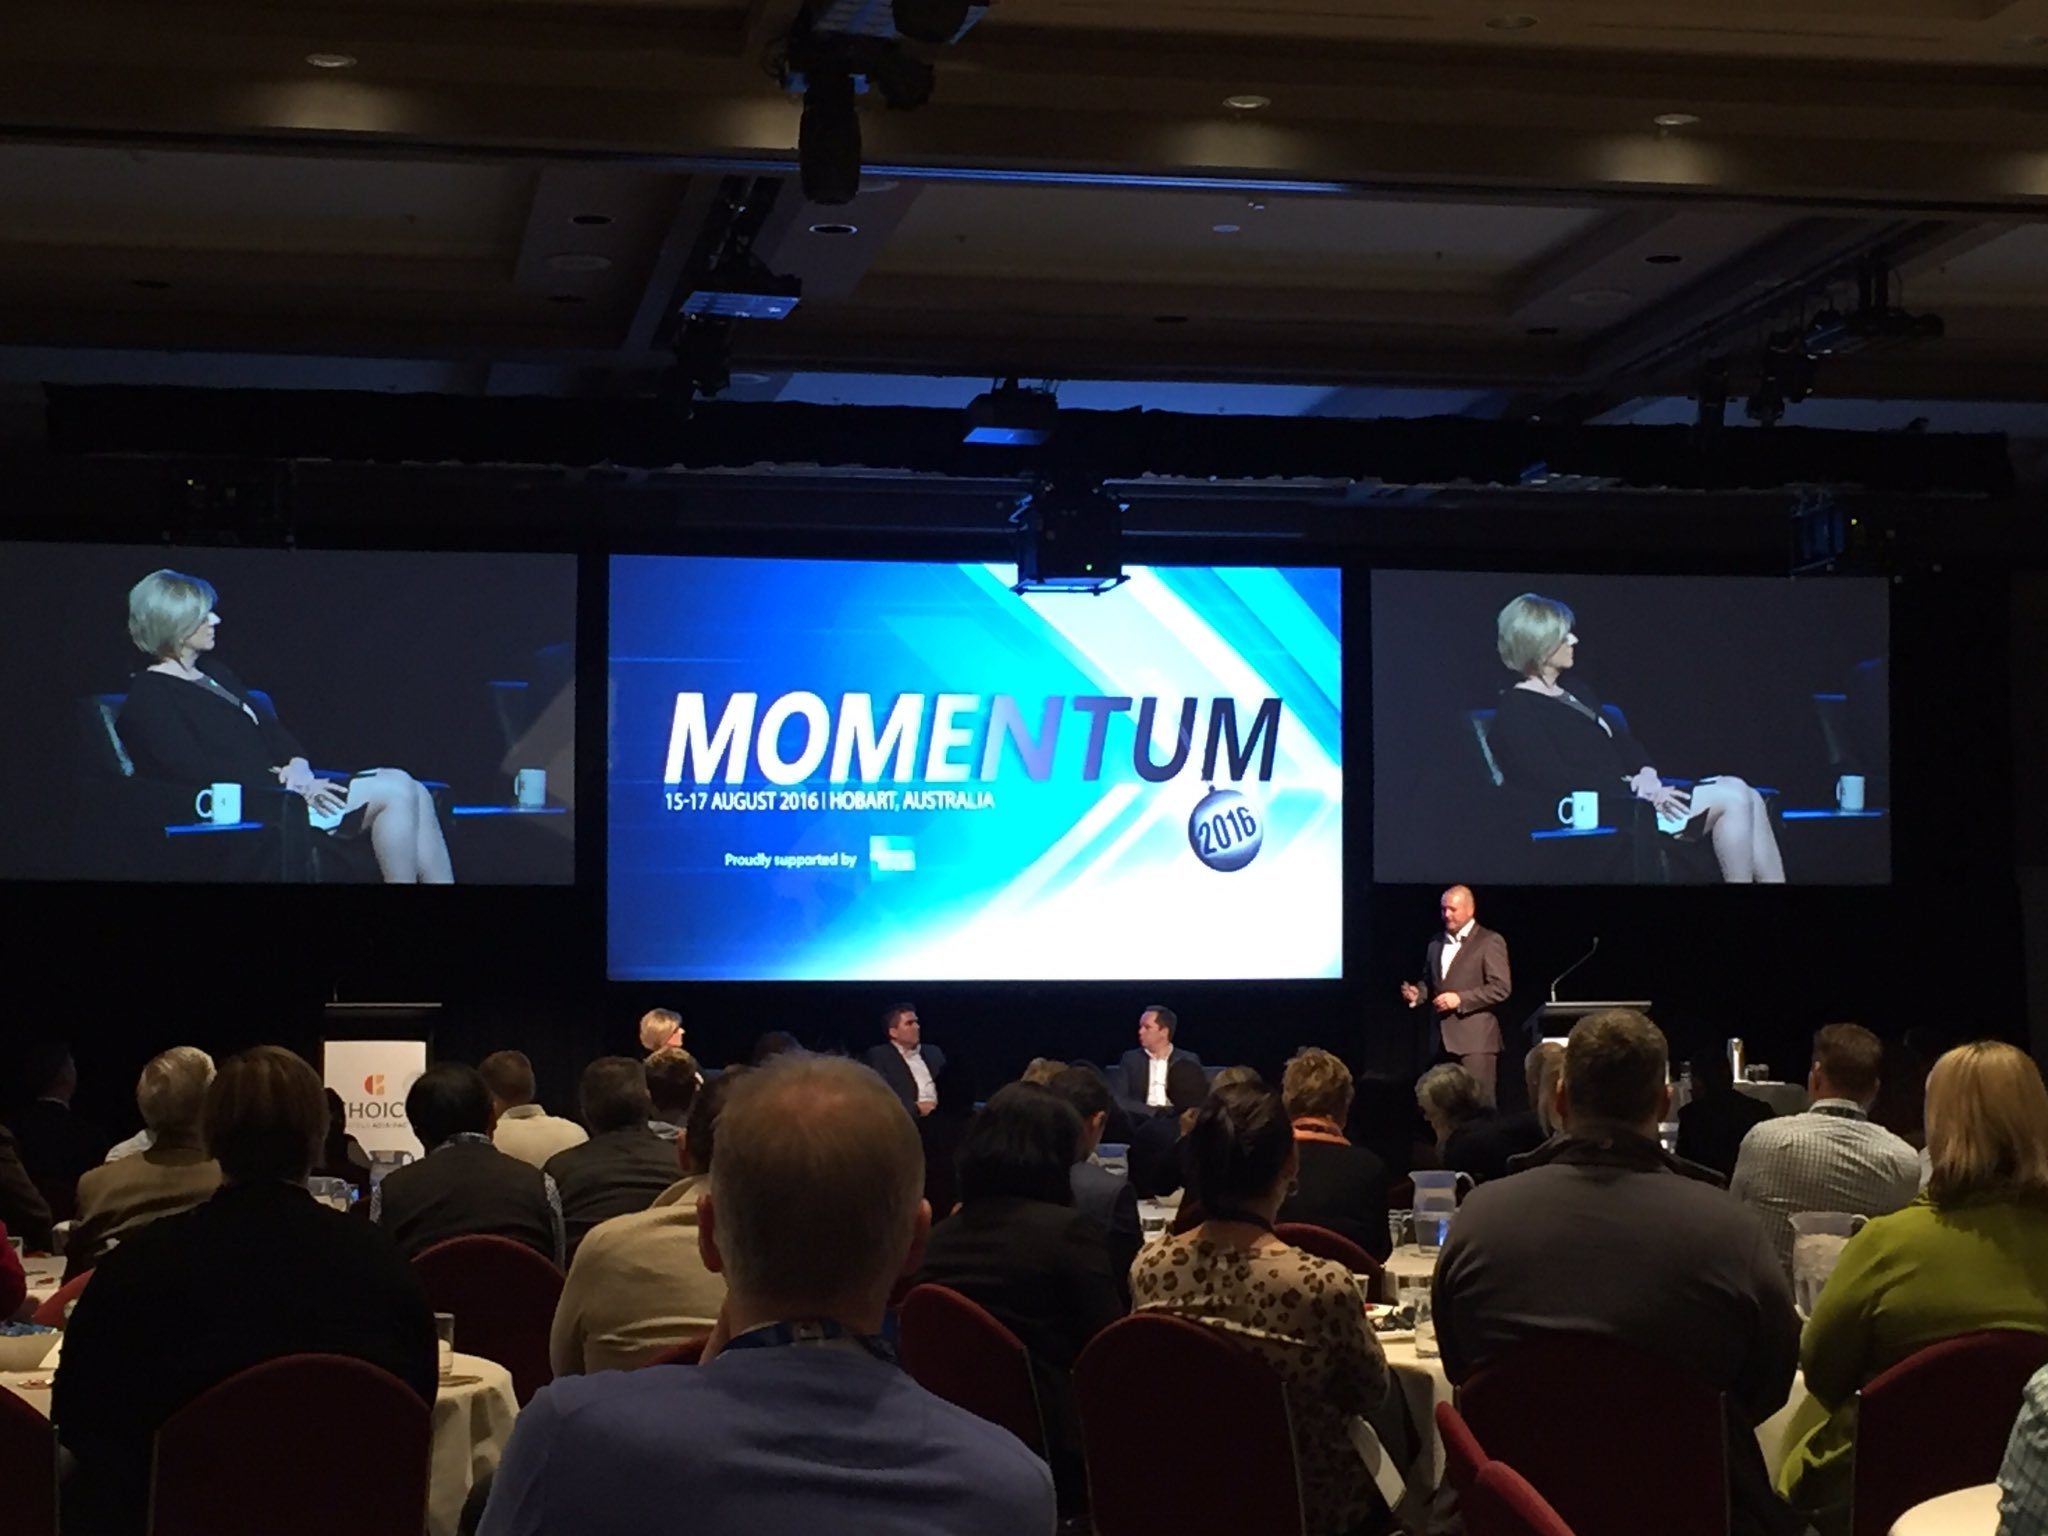 Great to be at @ChoiceHotels Annual  Conference in @tasmania the key theme: Momentum! @TourismAus https://t.co/80D1EIXDSE